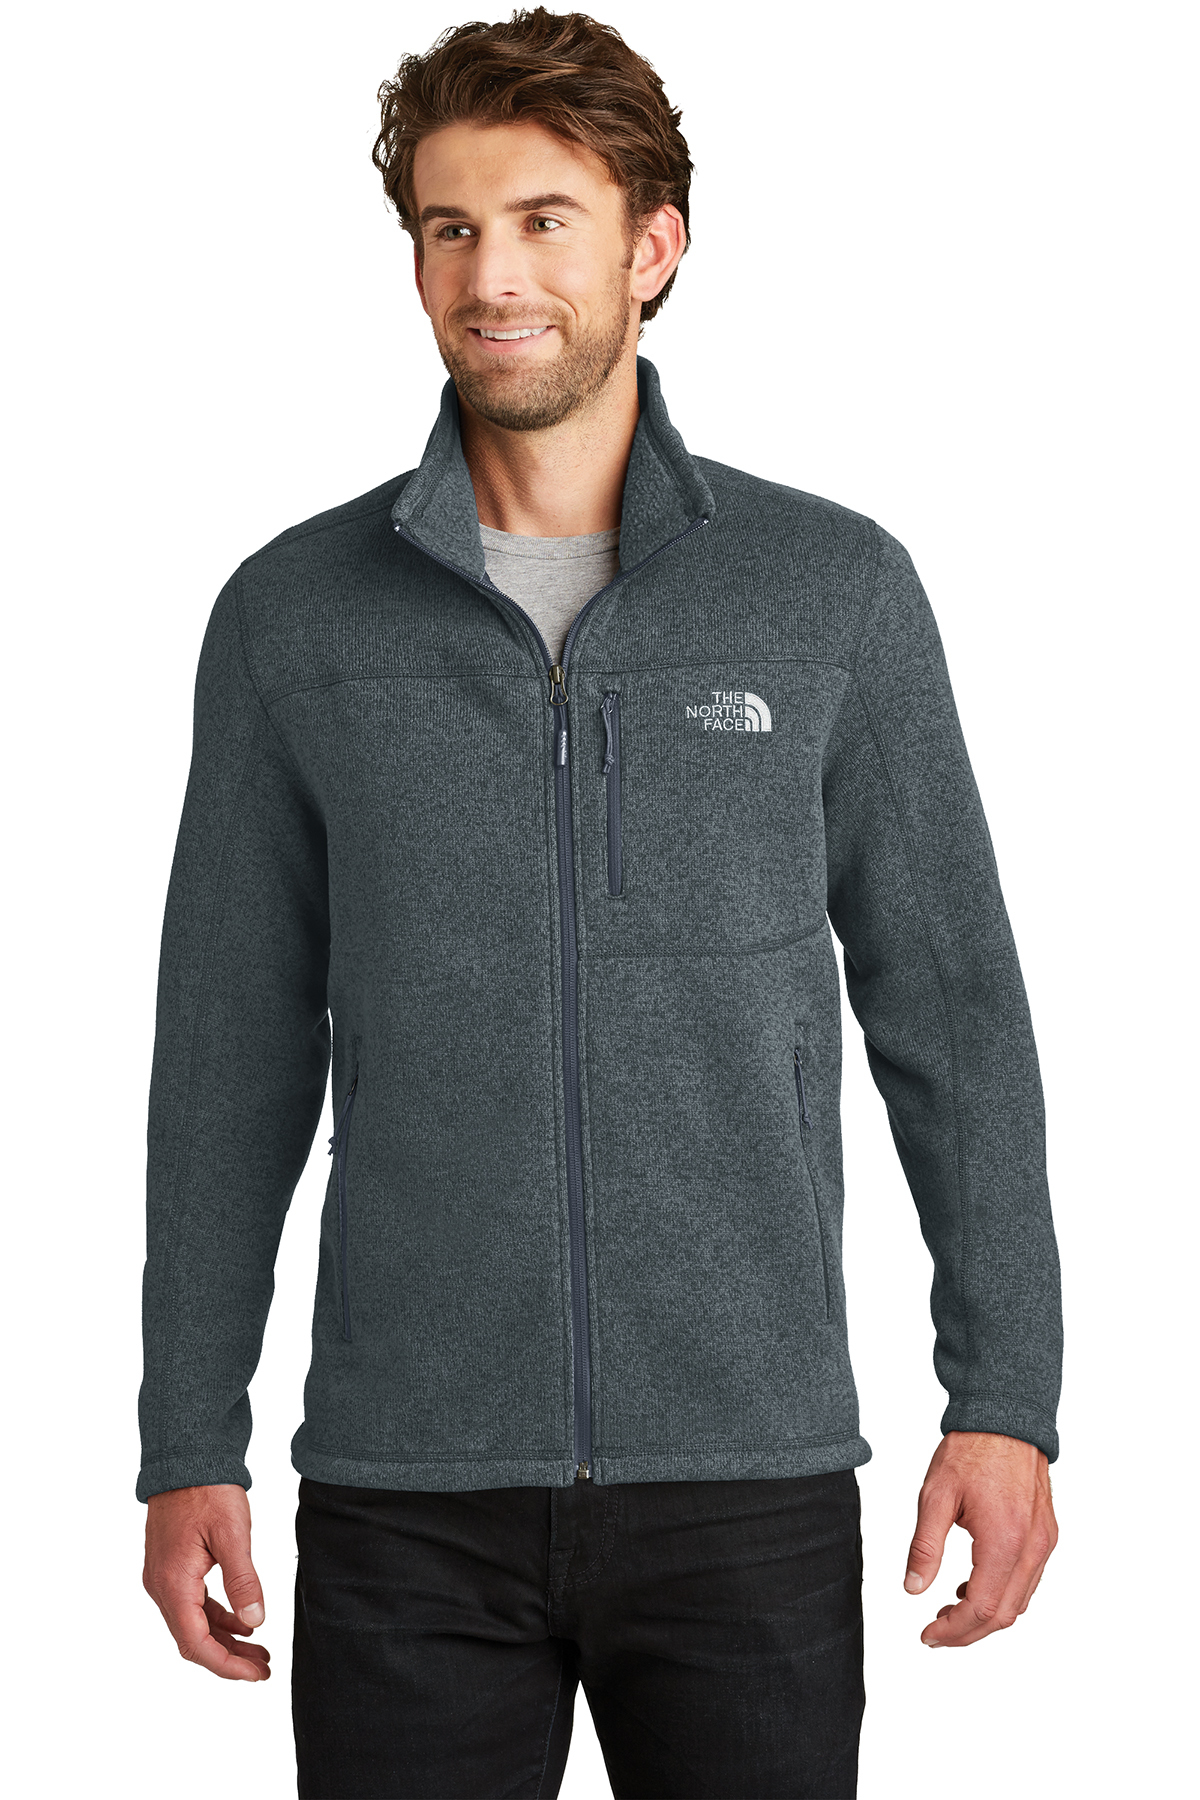 The North Face® Sweater Fleece Jacket  718da901f